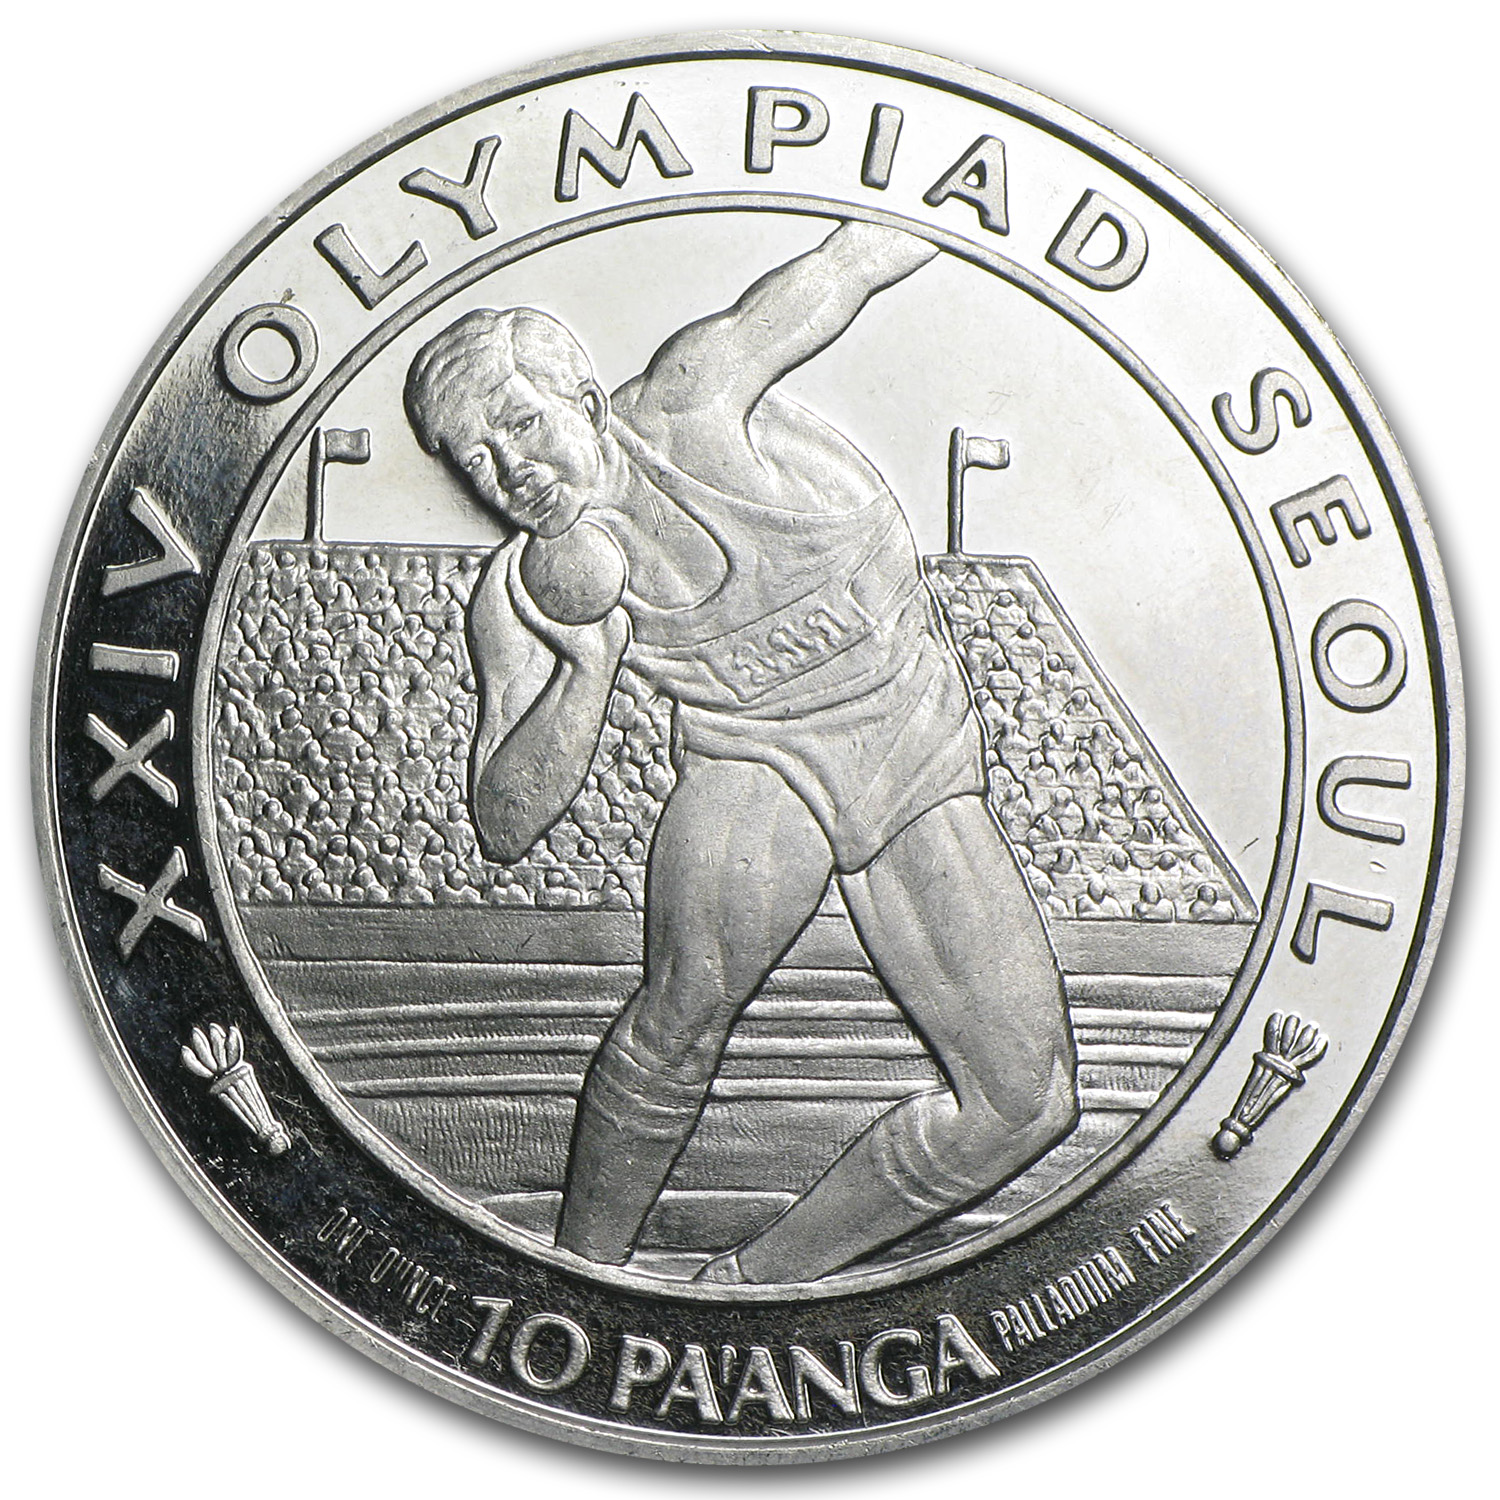 1988 1 oz Palladium Tonga 10 Pa'anga Proof (Scruffy)